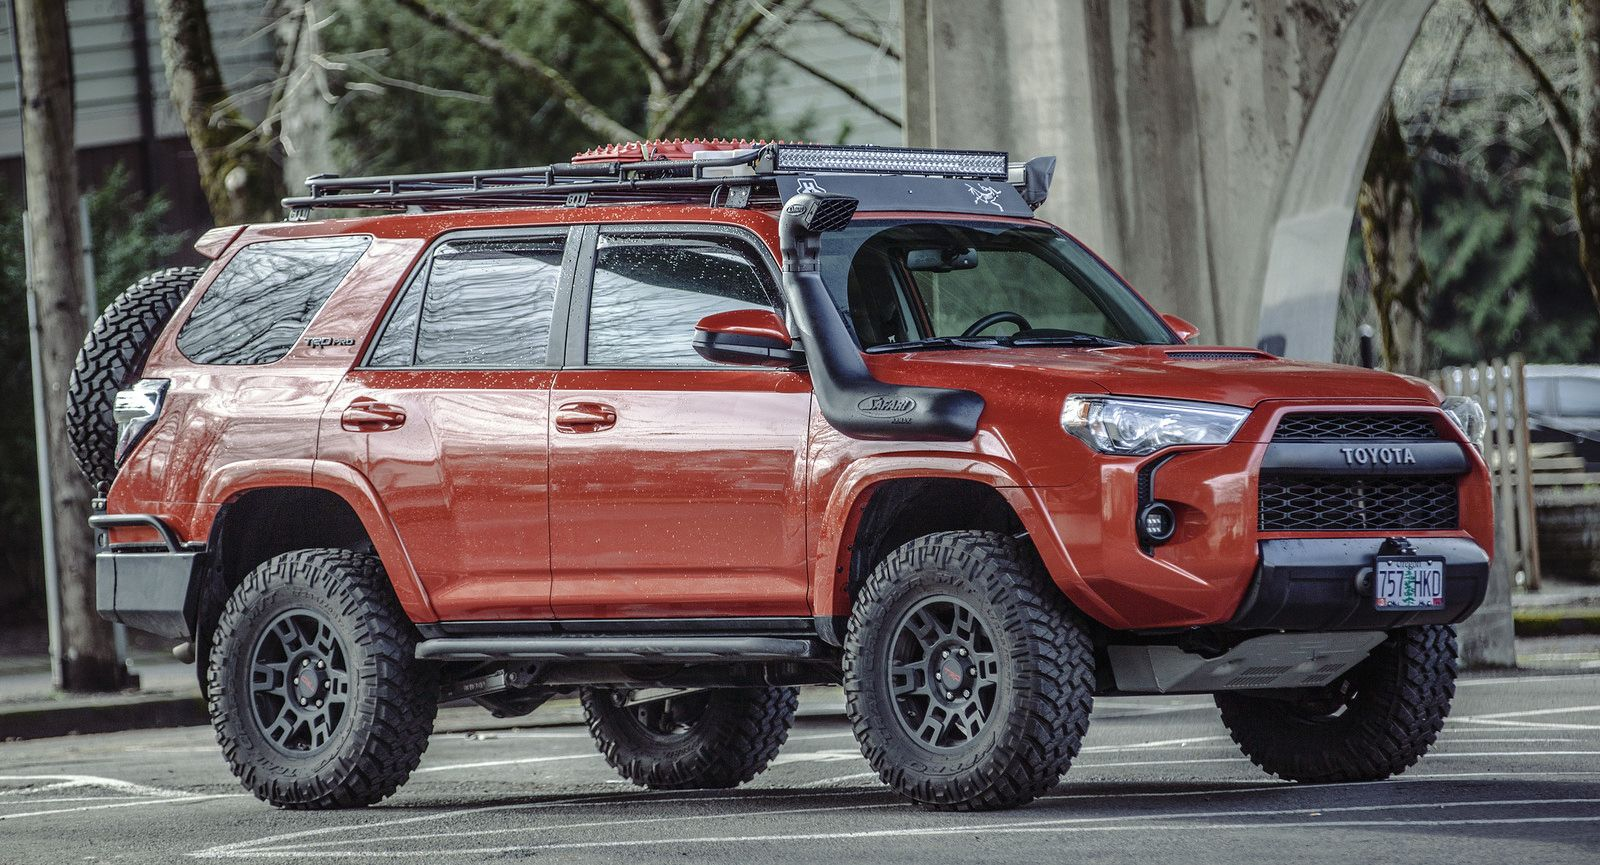 5th Gen T4R Picture Gallery - Page 324 - Toyota 4Runner ...